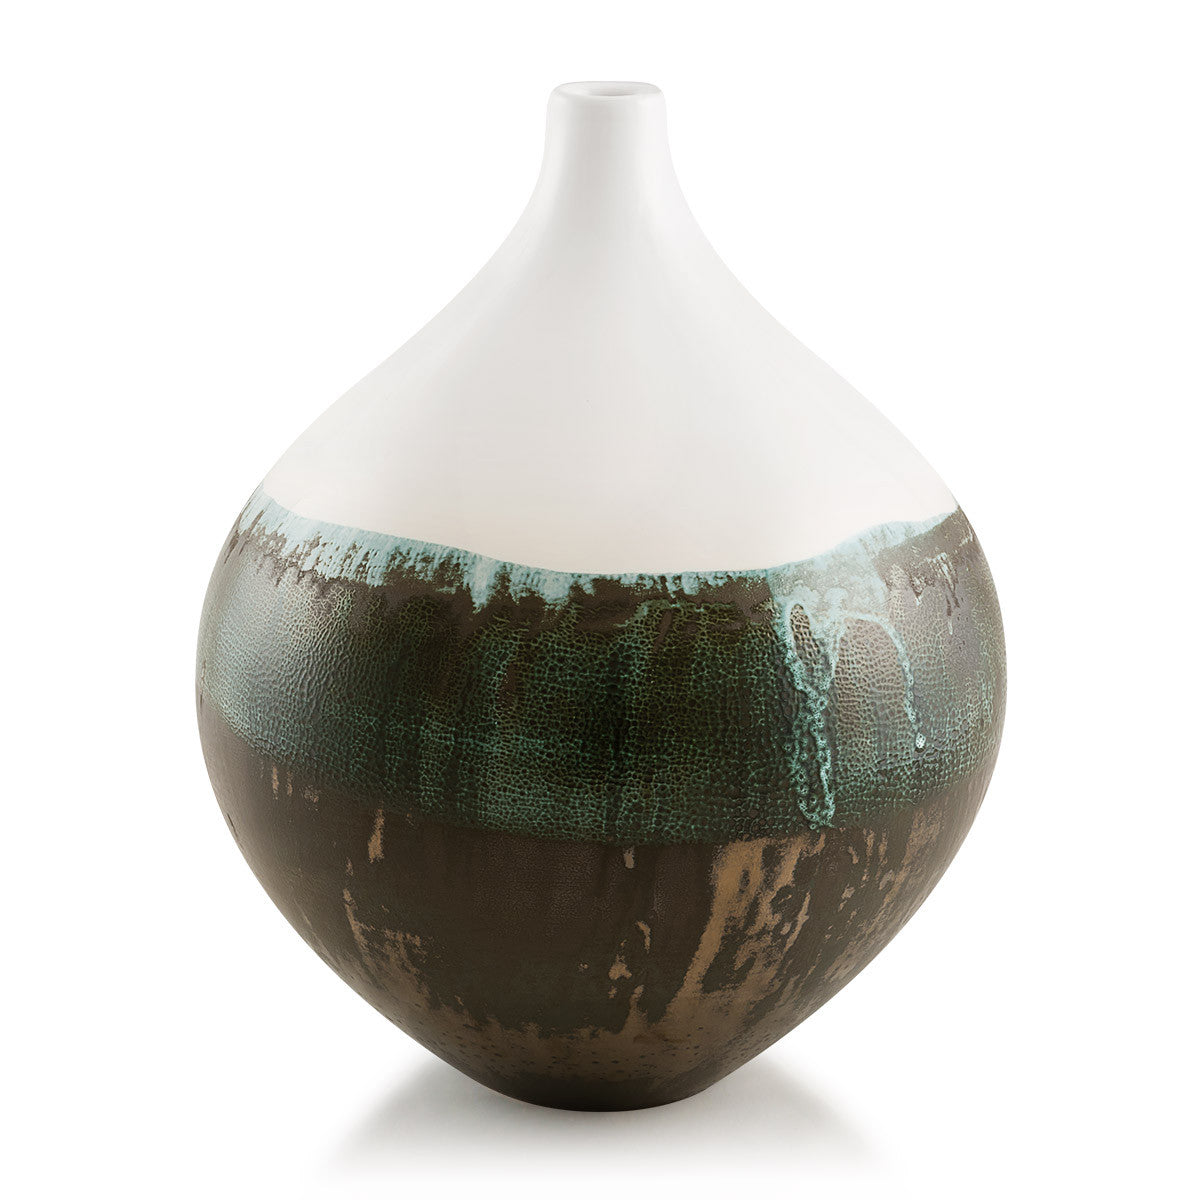 Ceramic teardrop vase | Reactive glaze